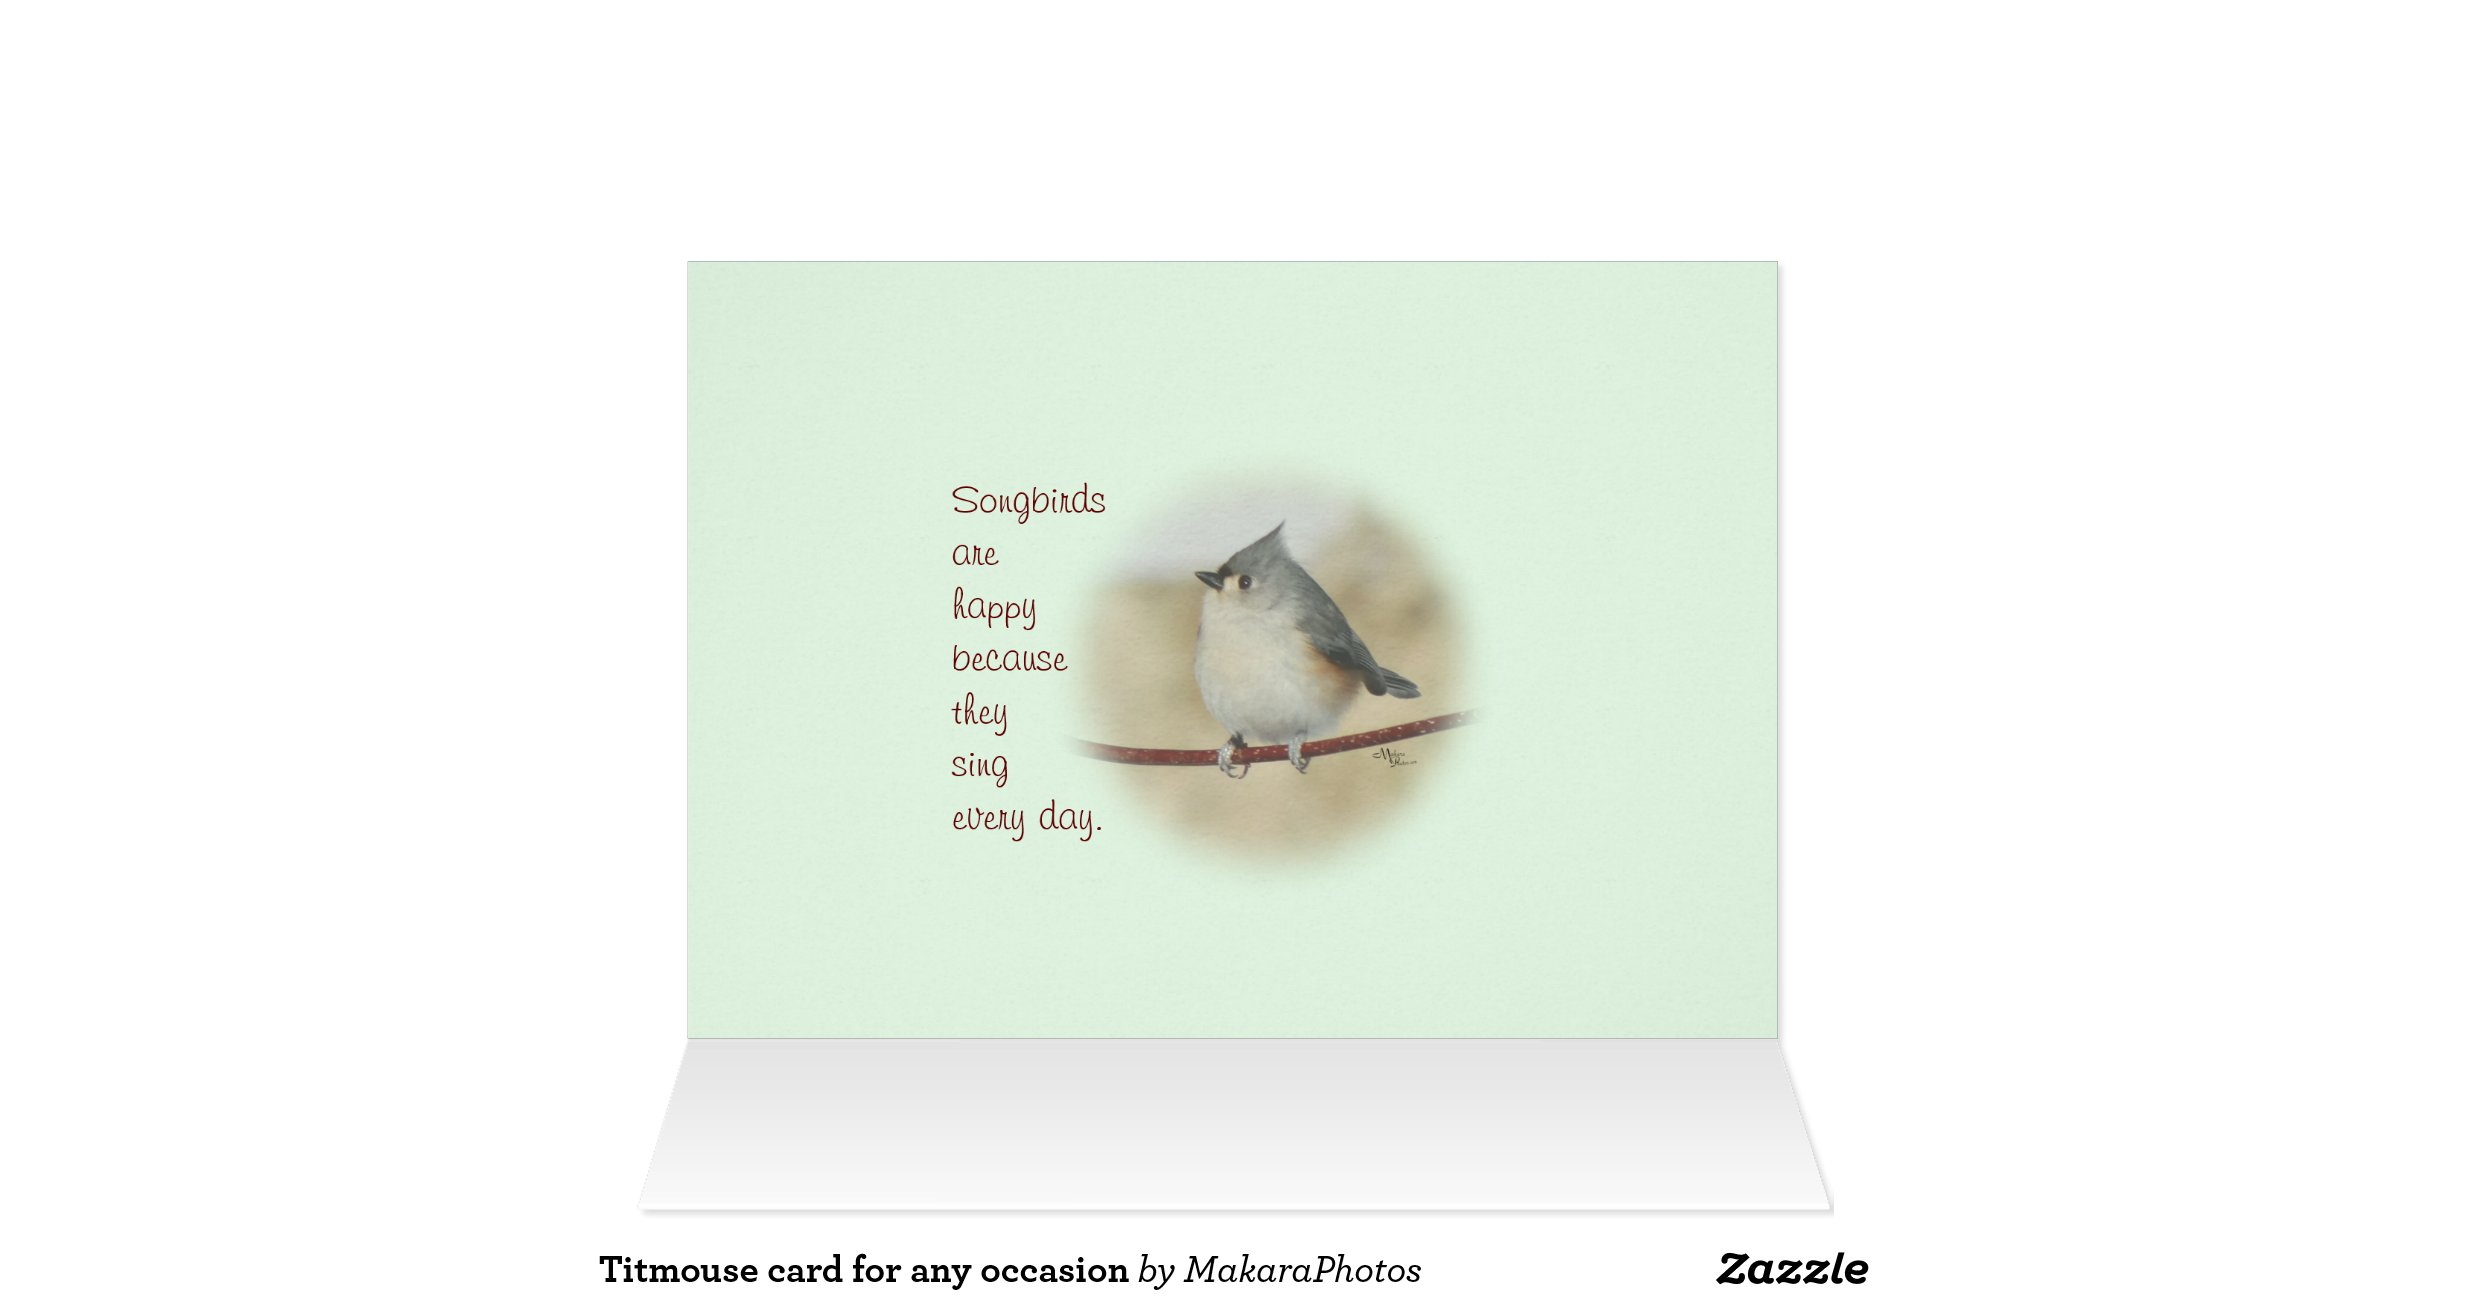 titmouse card for any occasion zazzle. Black Bedroom Furniture Sets. Home Design Ideas